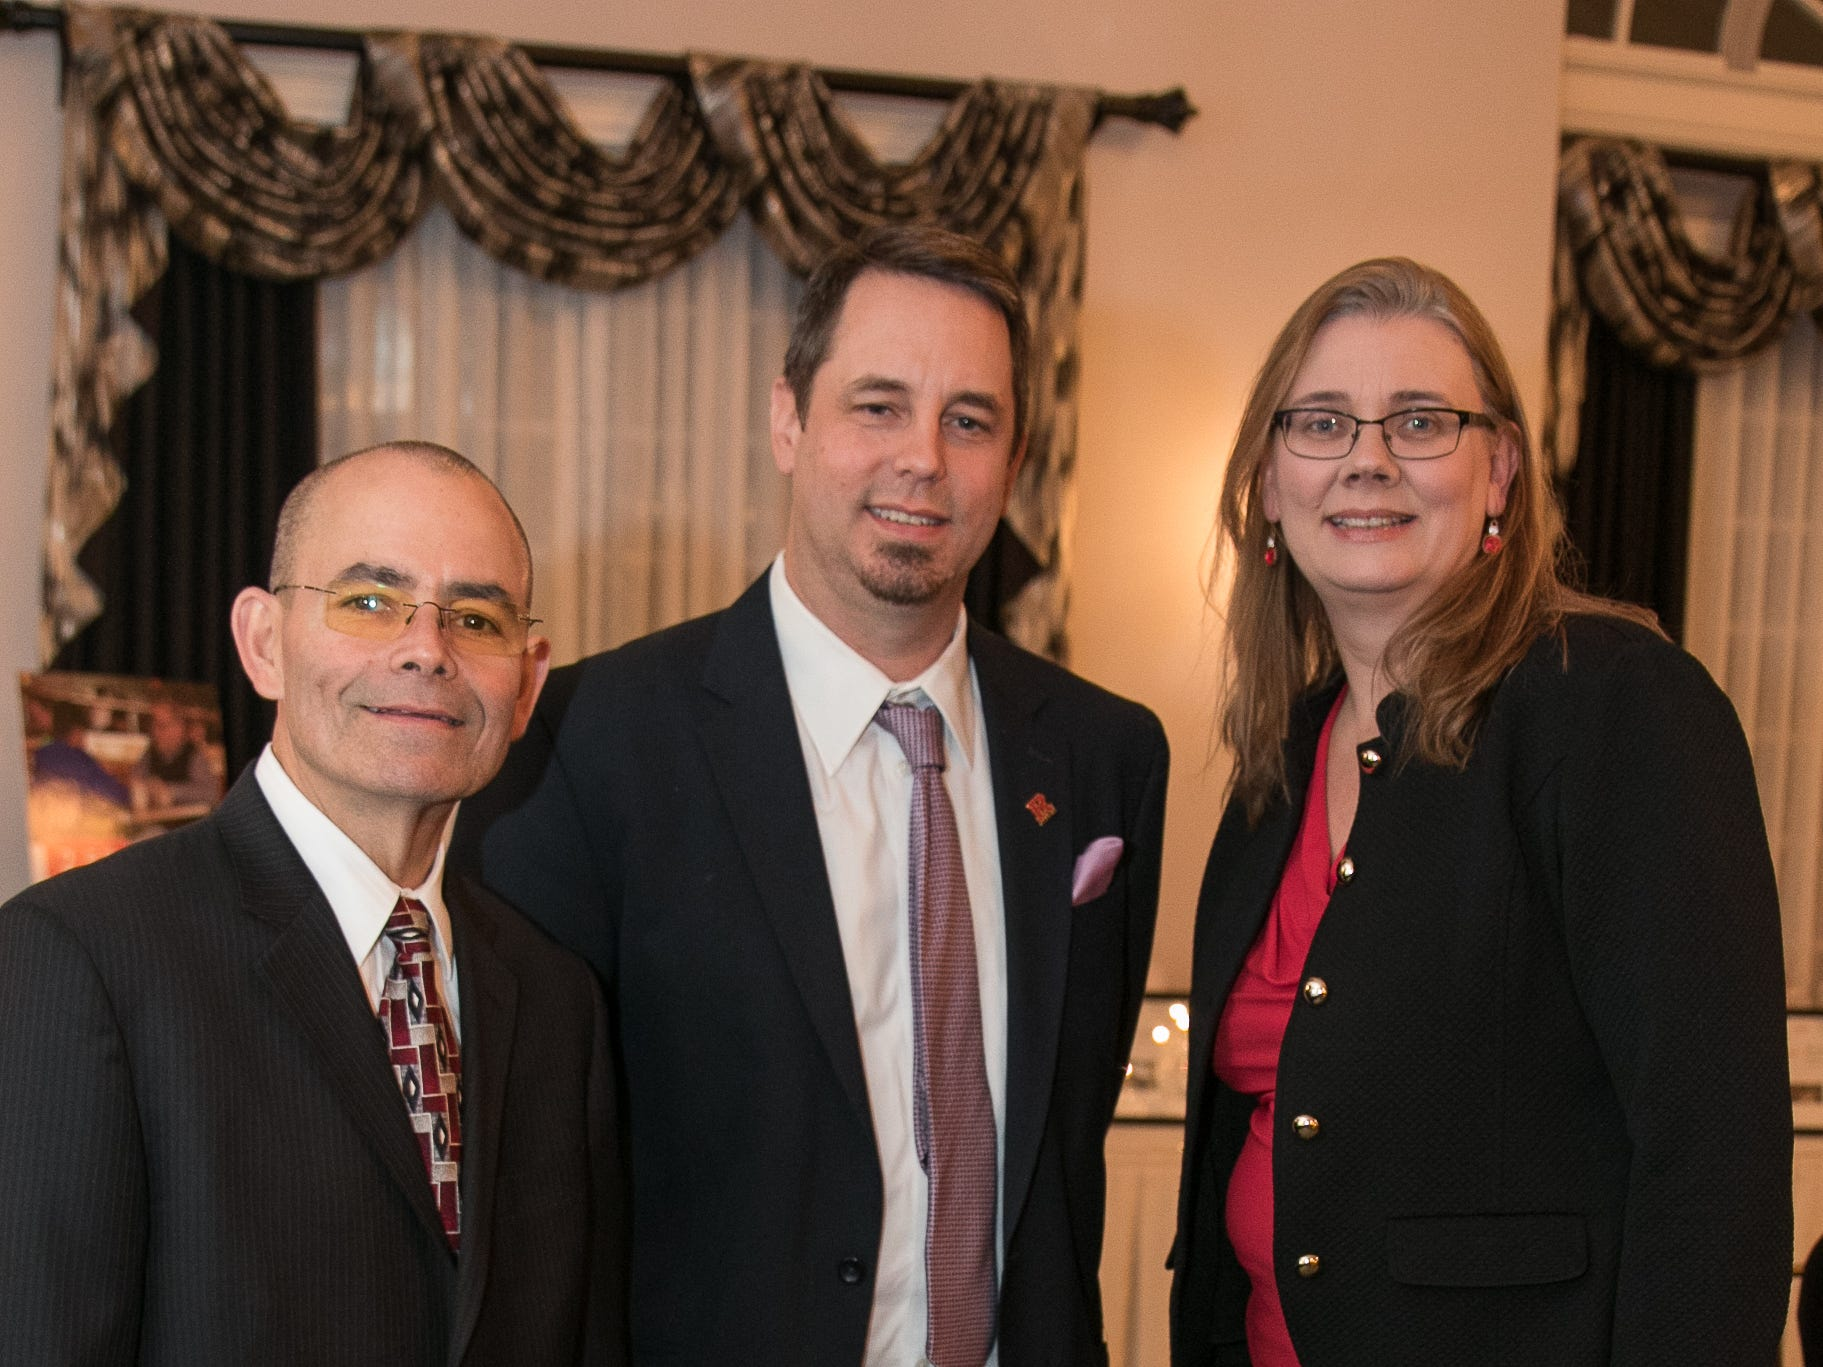 Tim Franco, Jeremy Guenter, Yvonne Zuidema. The Bergen Volunteer Center celebrated its 10th anniversary of the Bergen LEADS program at The Hearts of Gold Dinner and Auction at the Stony Hill Inn in Hackensack. 11/08/2018